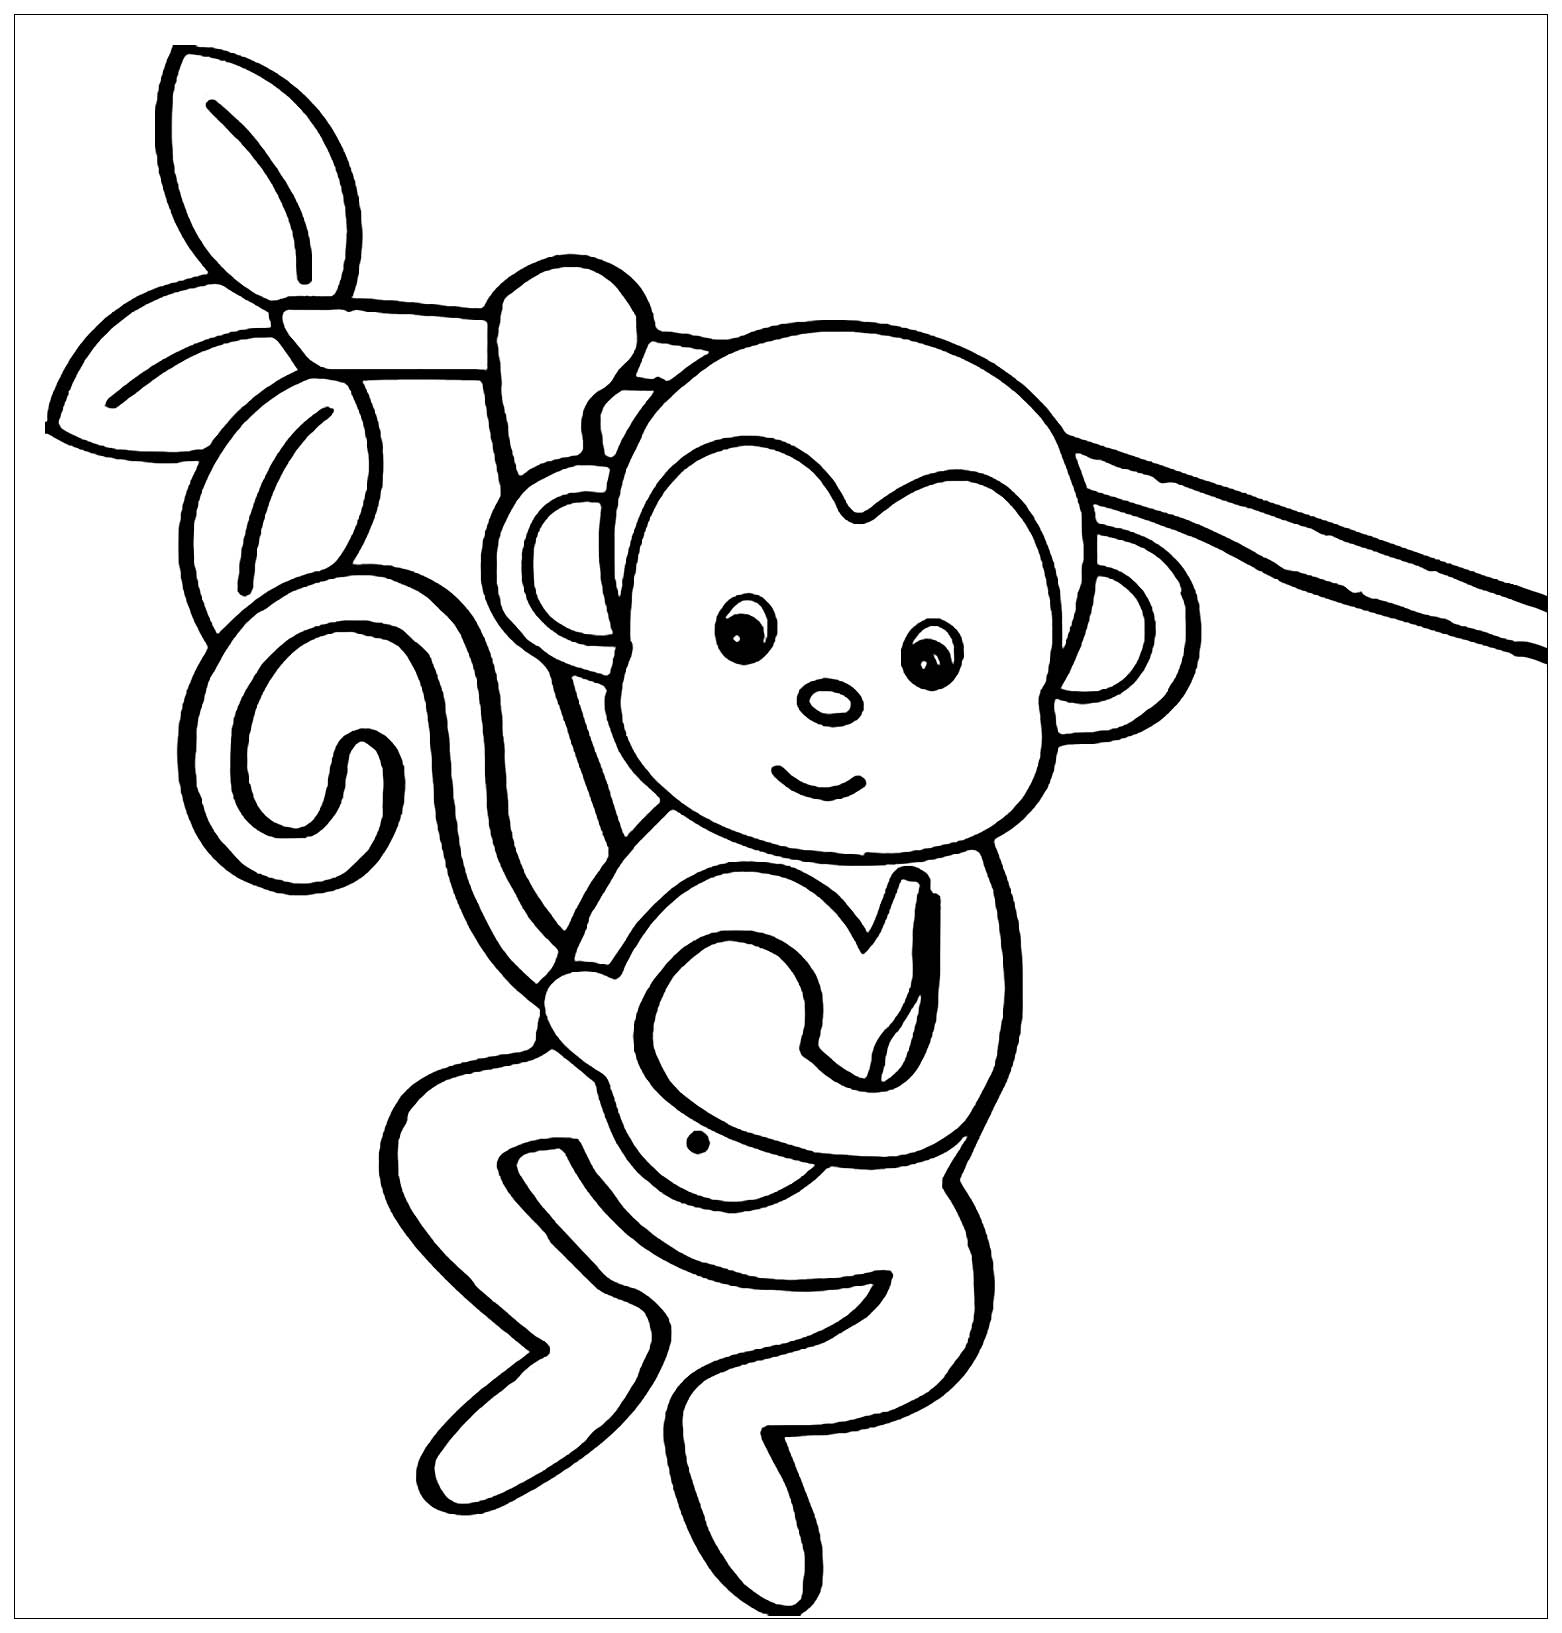 monkey pictures for coloring monkeys to download for free monkeys kids coloring pages pictures coloring monkey for